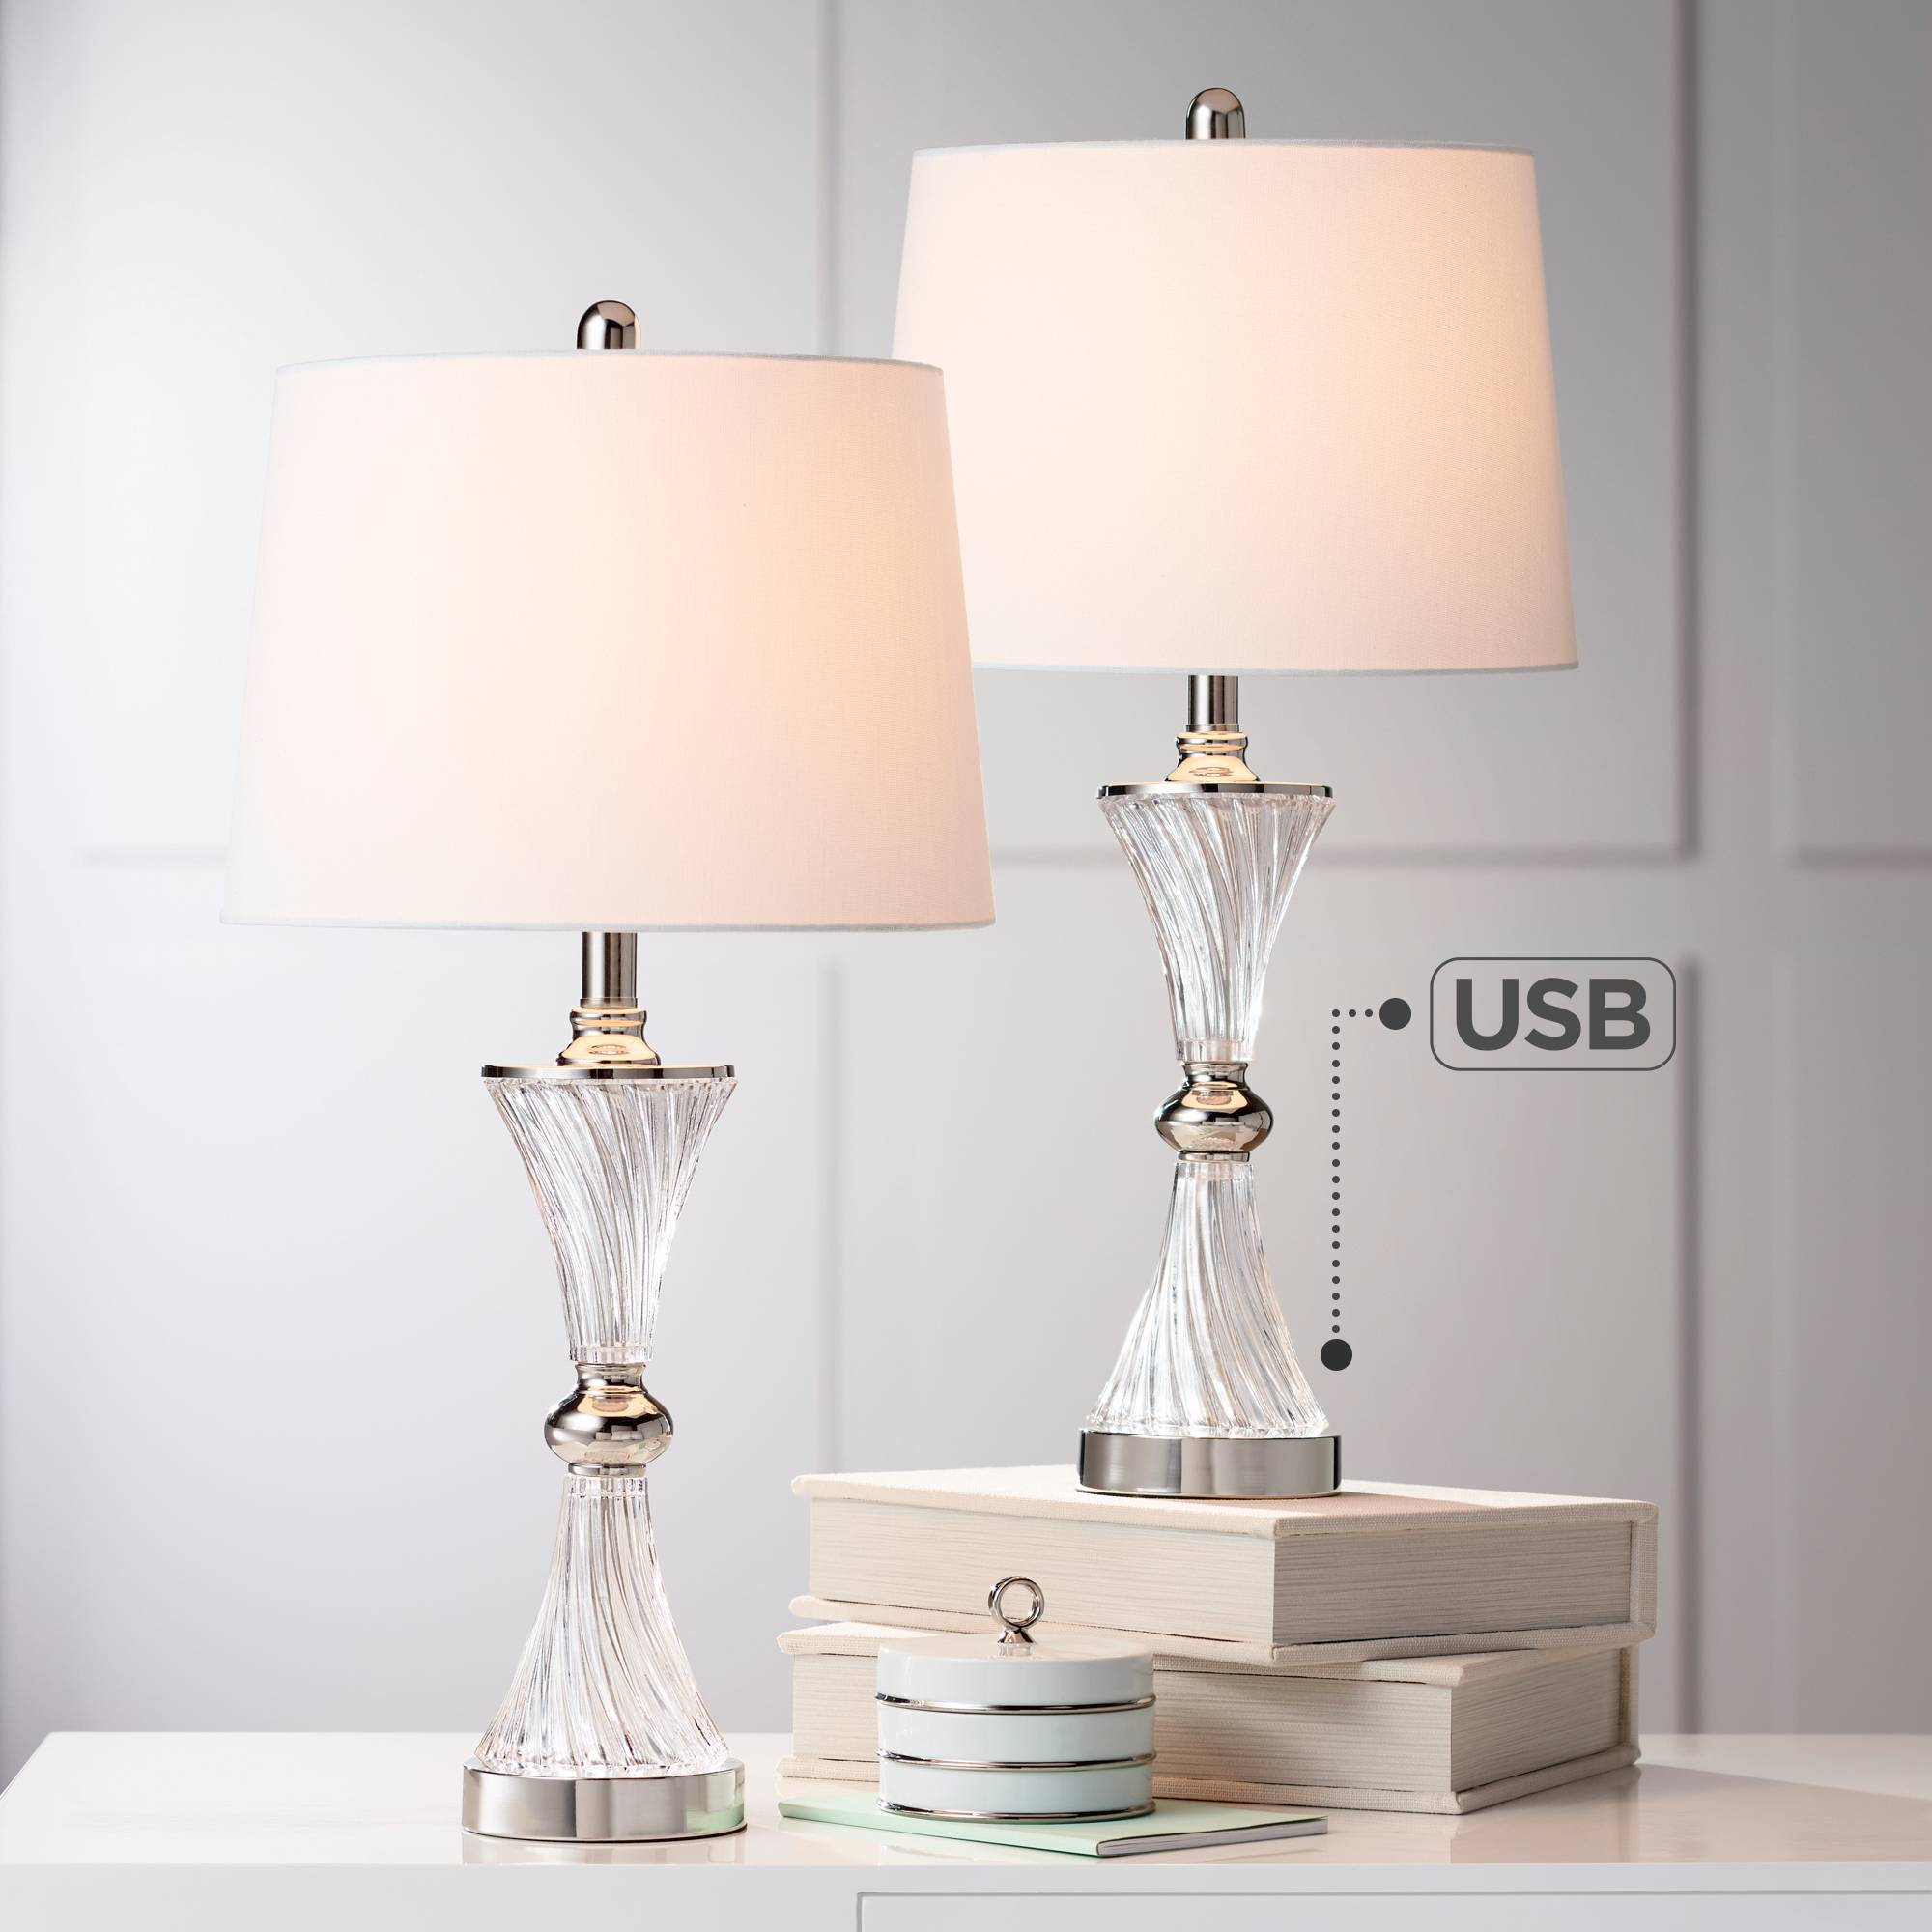 7267f38dca3d1 Modern Table Lamps Set of 2 with USB Chrome and Glass for Living ...